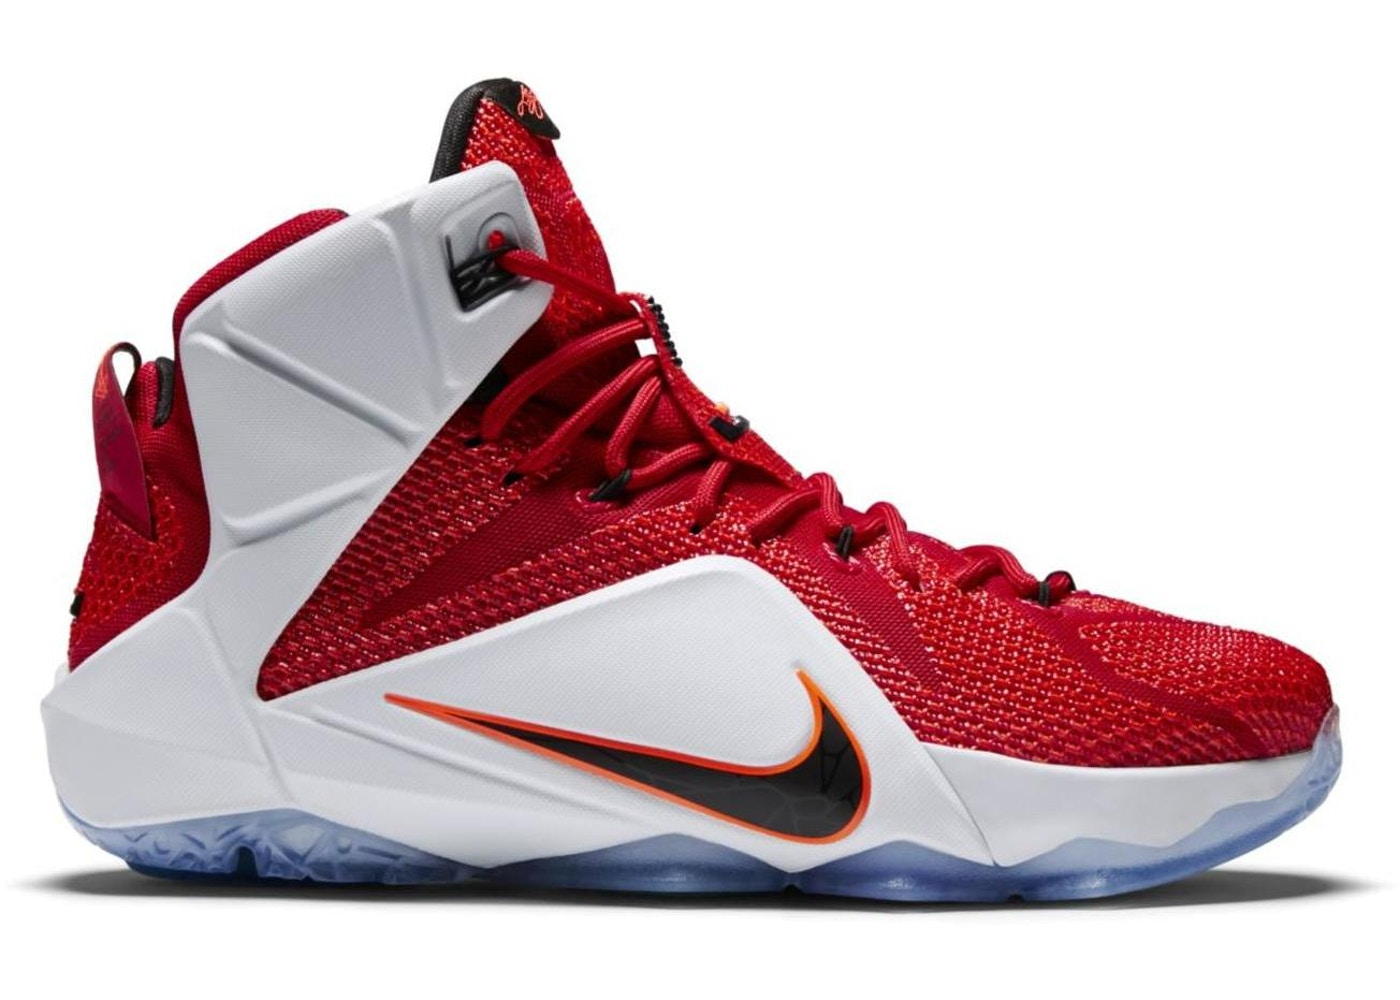 d9fc5bdae89 LeBron 12 Heart of a Lion - 684593-601